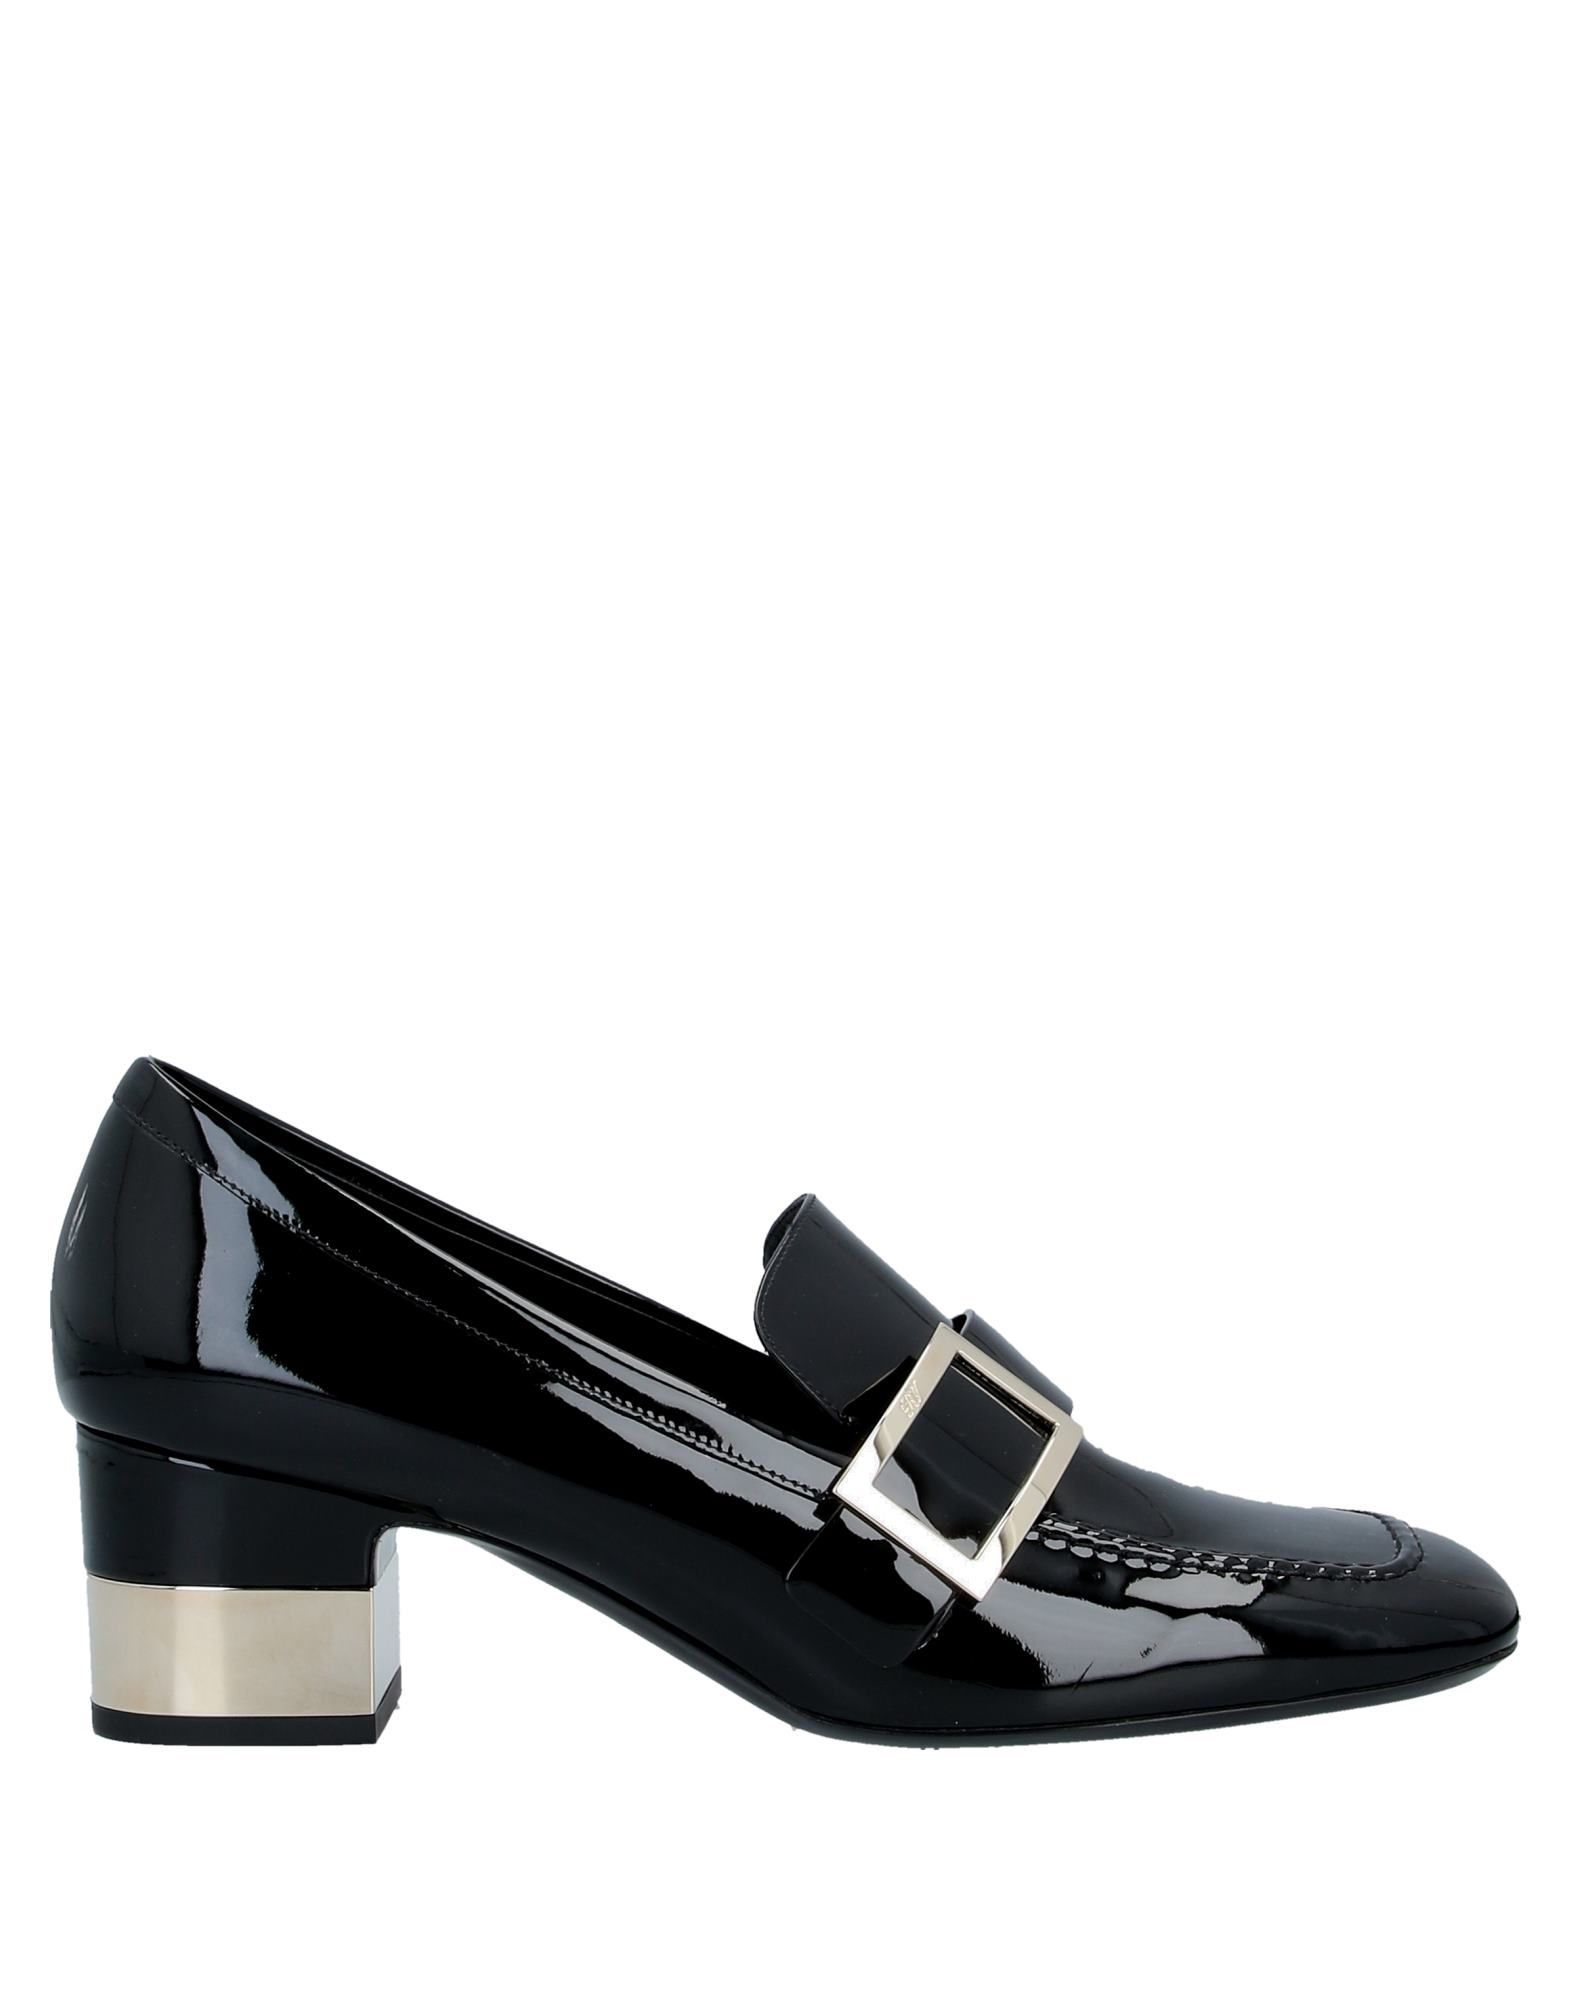 ROGER VIVIER Loafers. leather, varnished effect, buckle, logo, solid color, square toeline, covered heel, leather lining, square heel, contains non-textile parts of animal origin, leather sole. Soft Leather